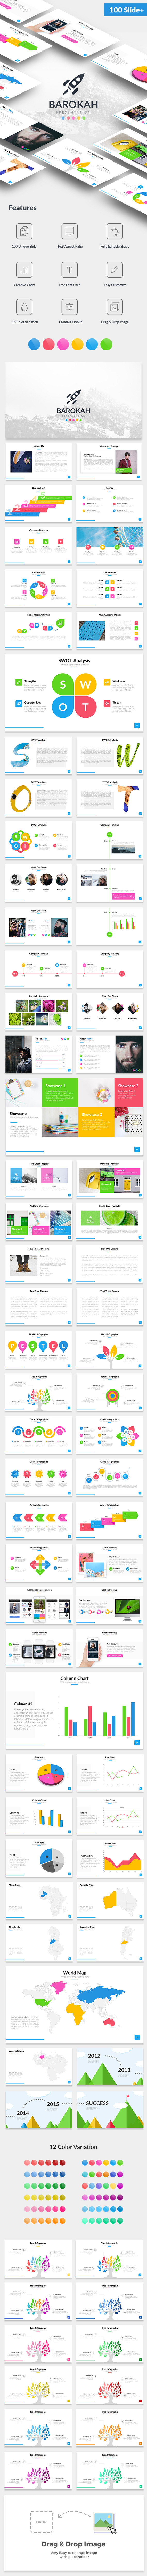 Barokah Multipurpose Powerpoint Template - PowerPoint Templates Presentation Templates